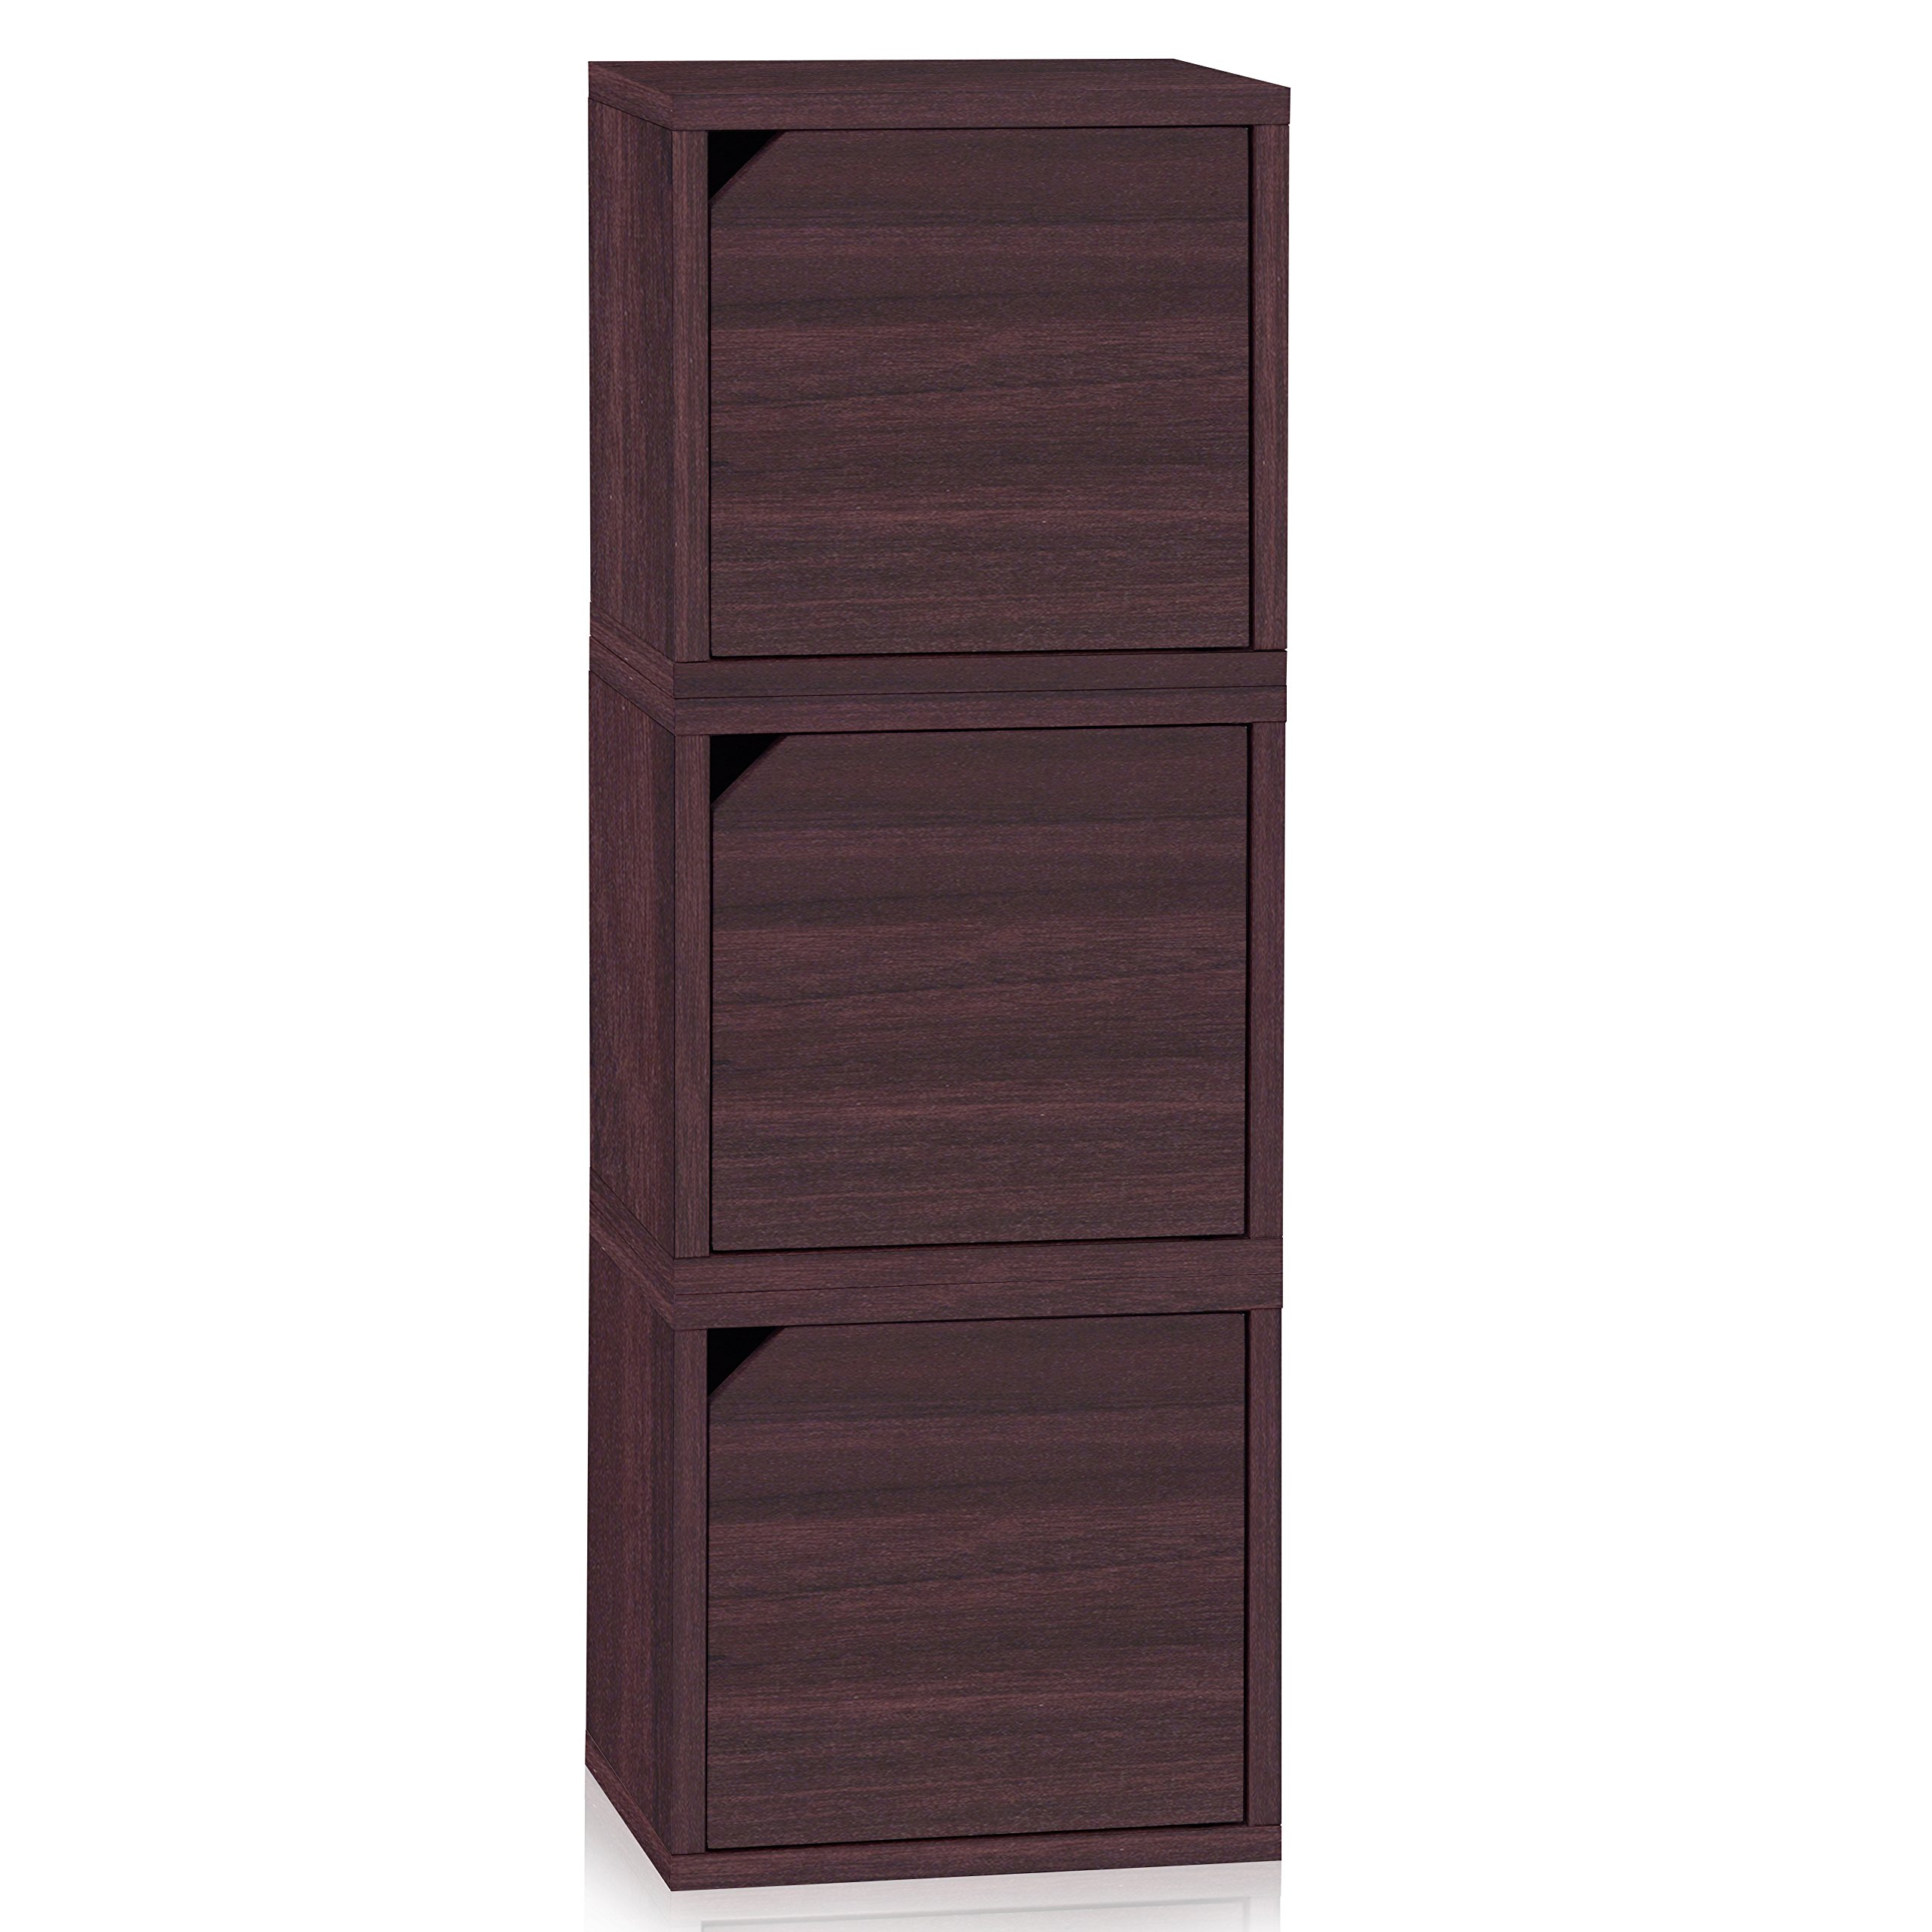 Way Basics Eco Stackable Connect 3 Door Cube Storage, Espresso Wood Grain (made from sustainable non-toxic zBoard paperboard)